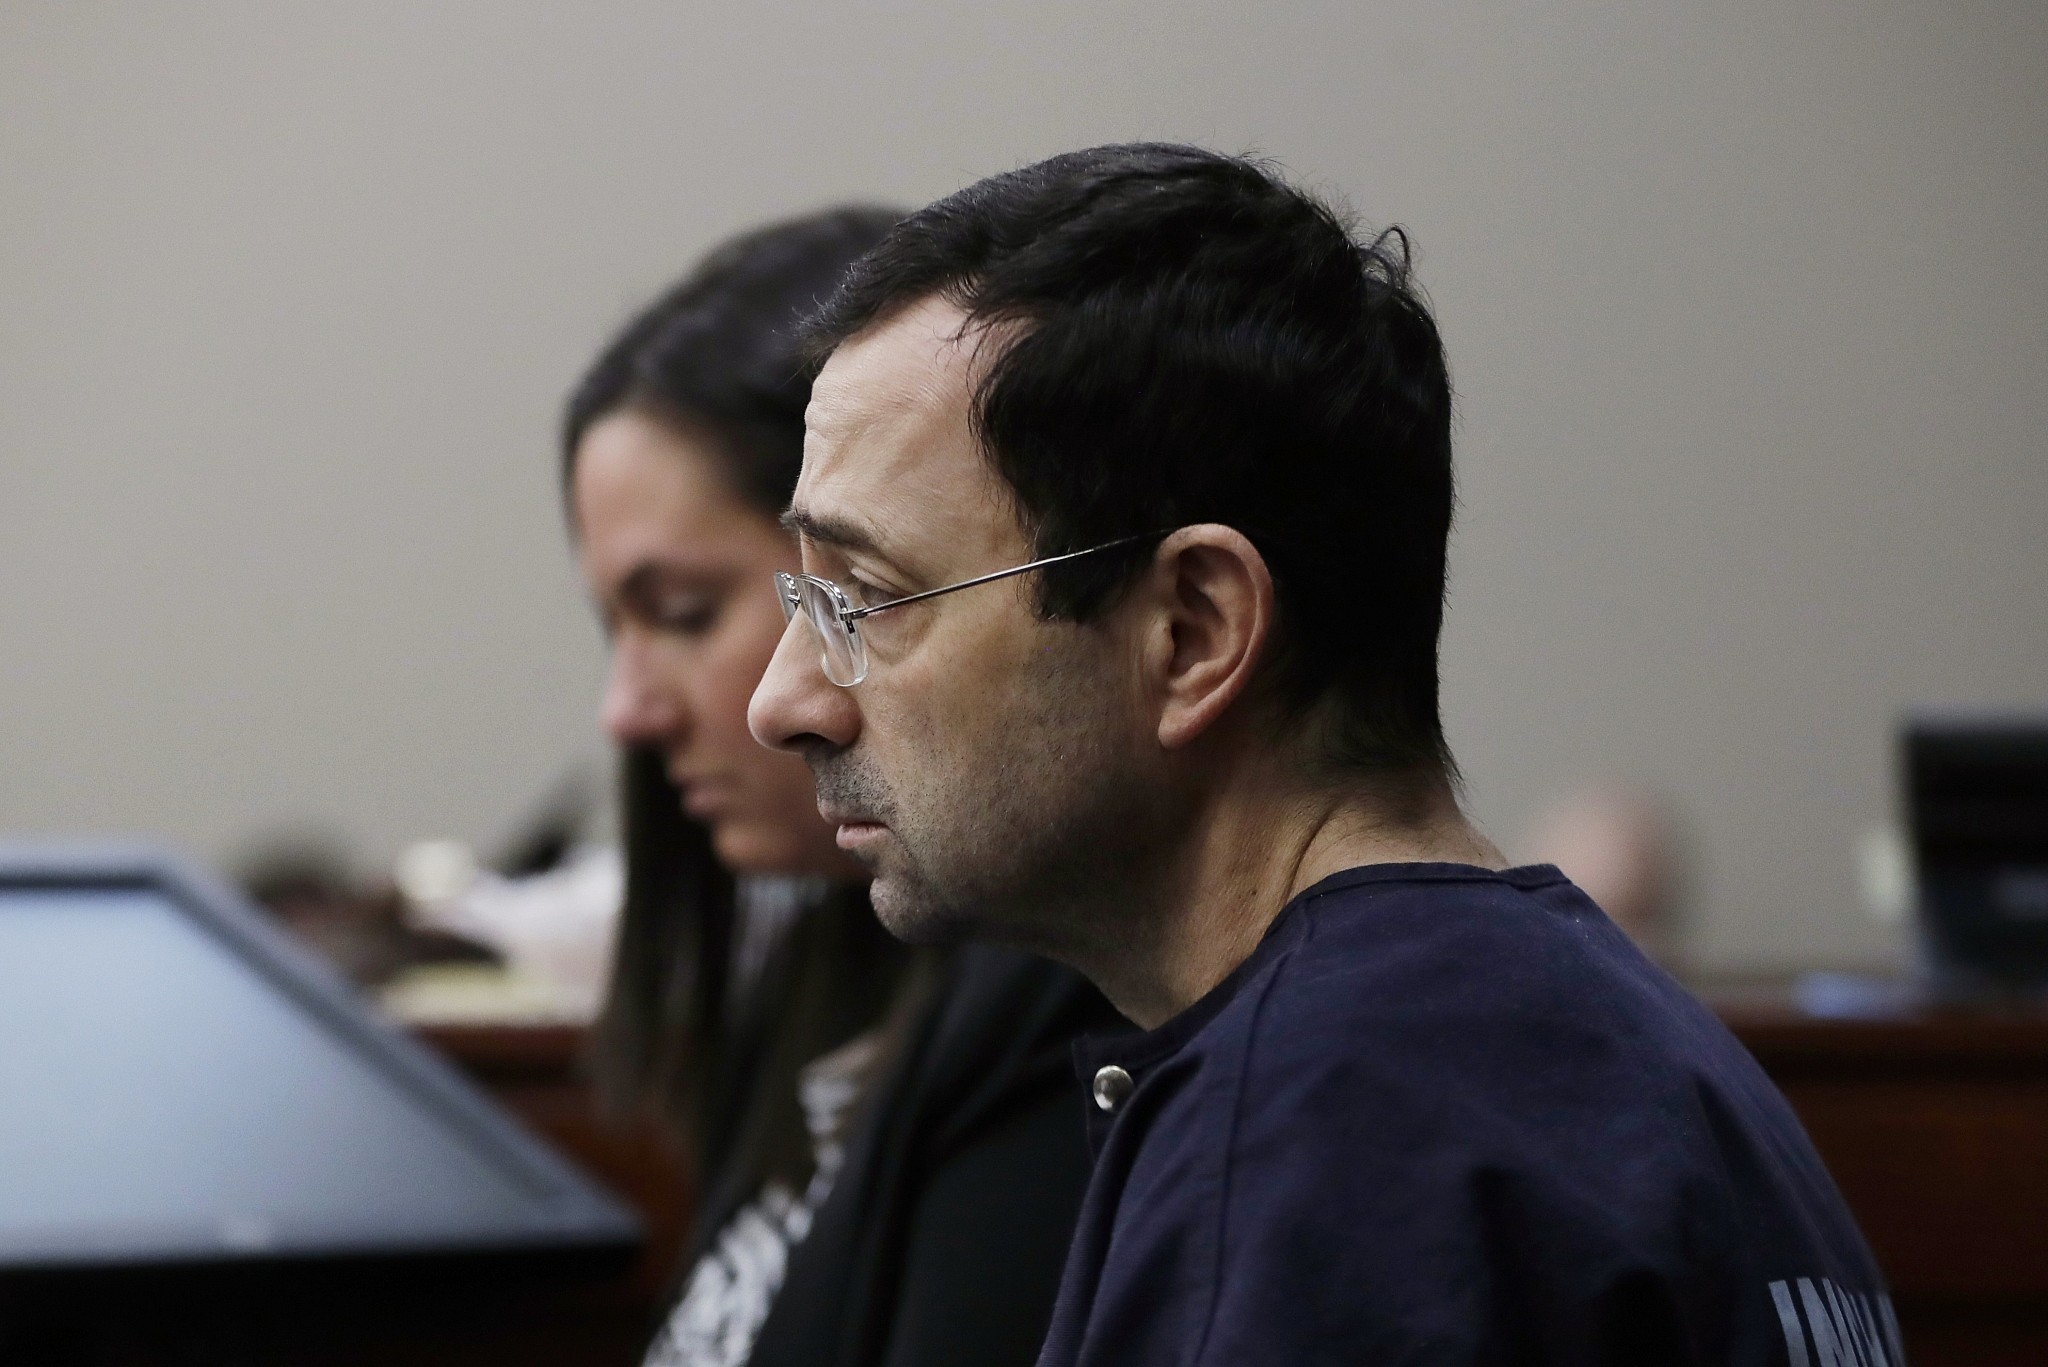 USA Gymnastics Executives Resign Amid Sex Abuse Scandal Involving Former Team Doctor